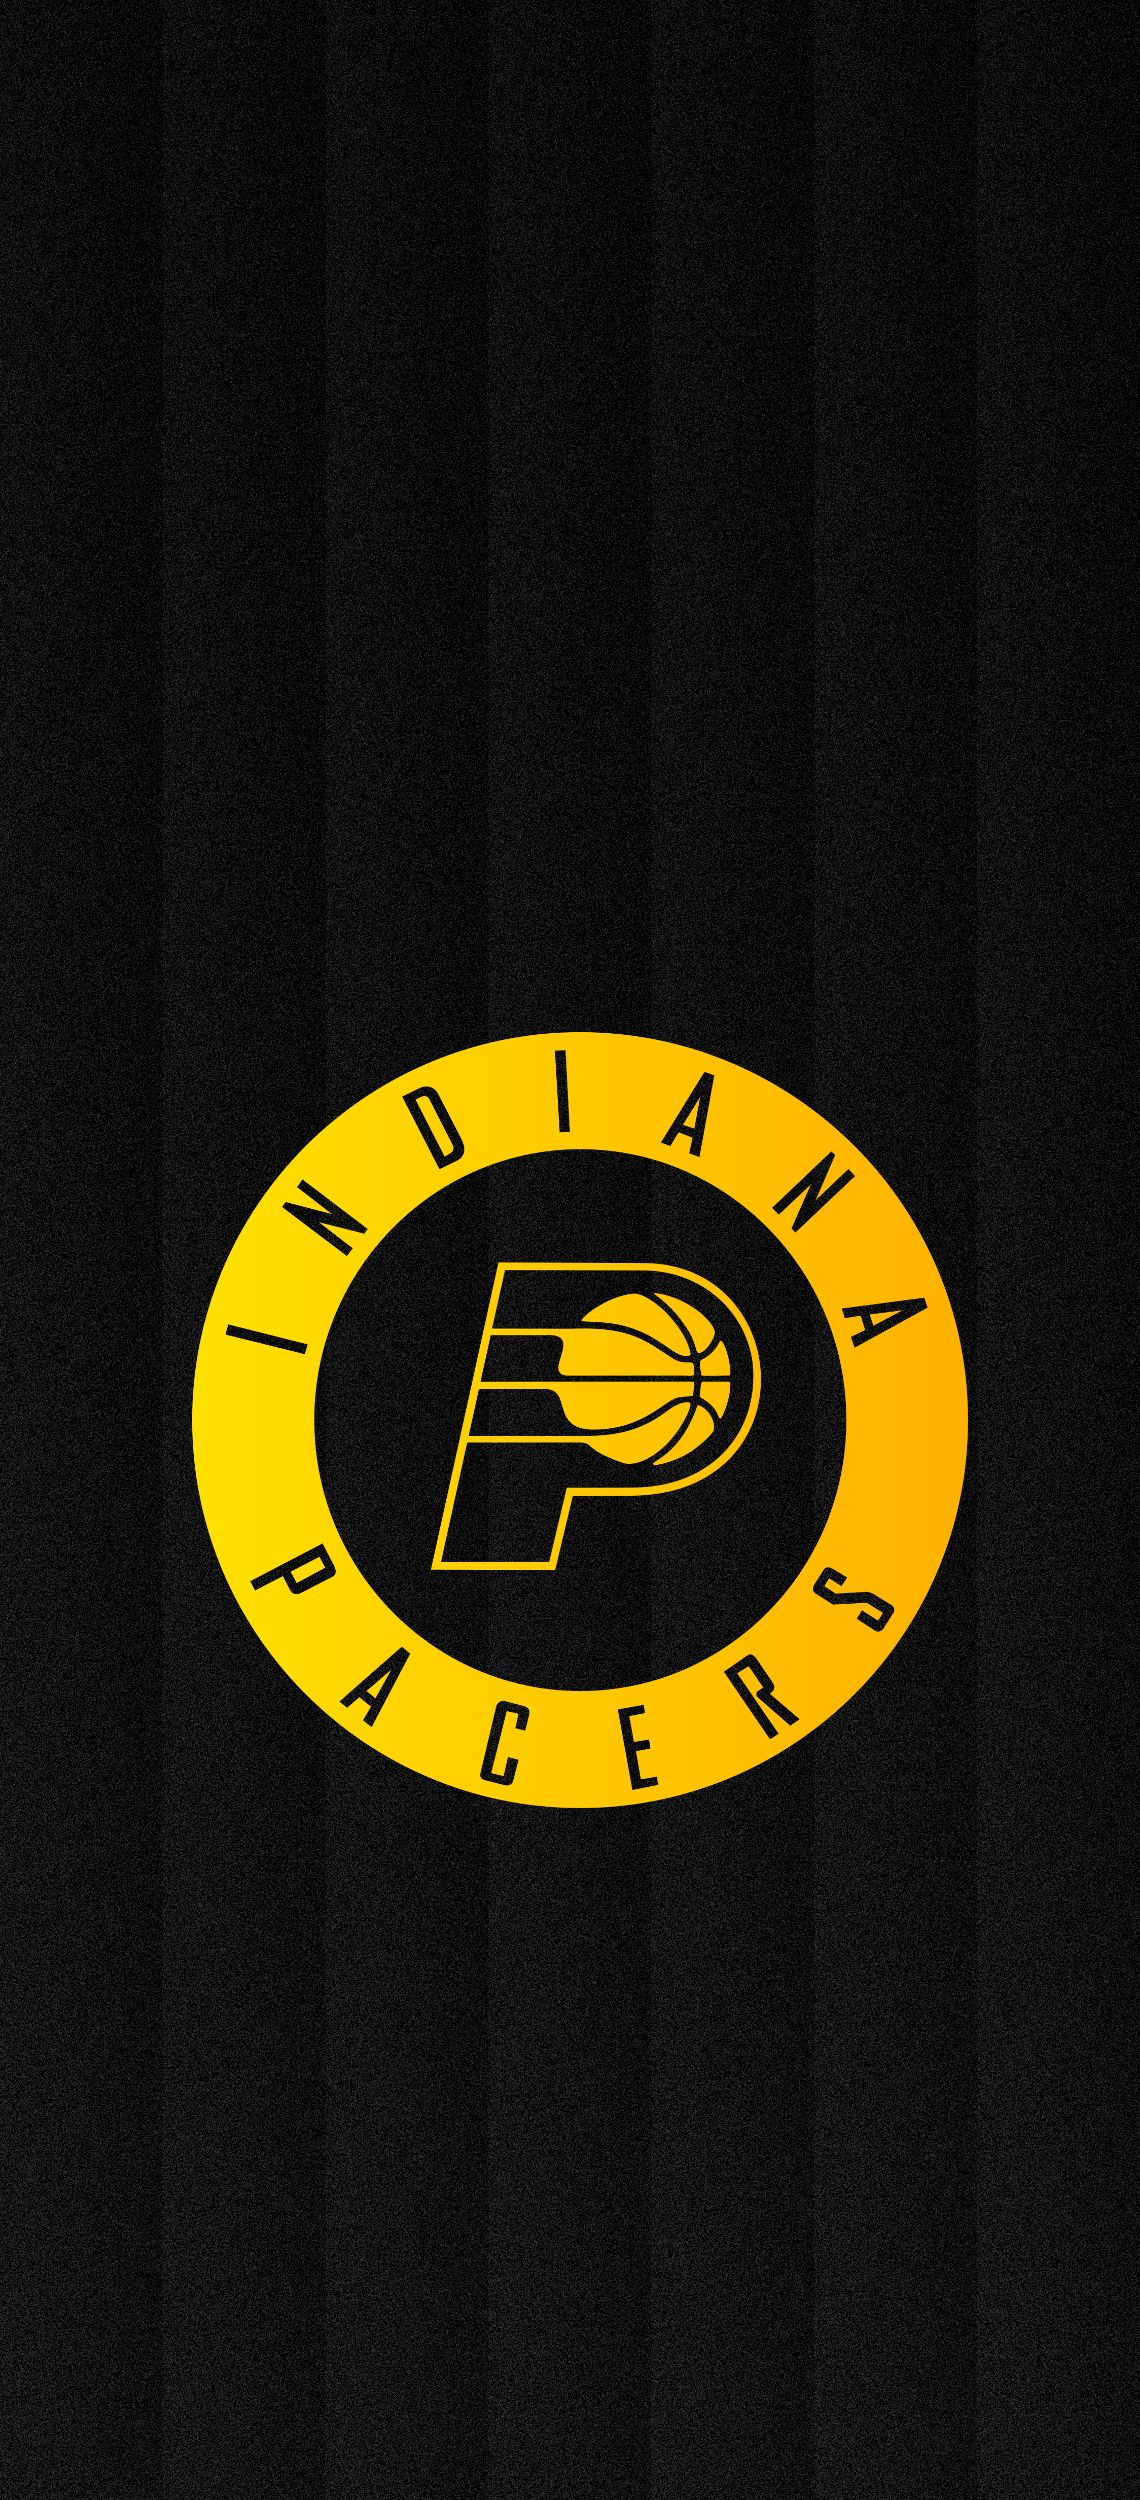 NBA Basketball Team Indiana Pacers phone background in